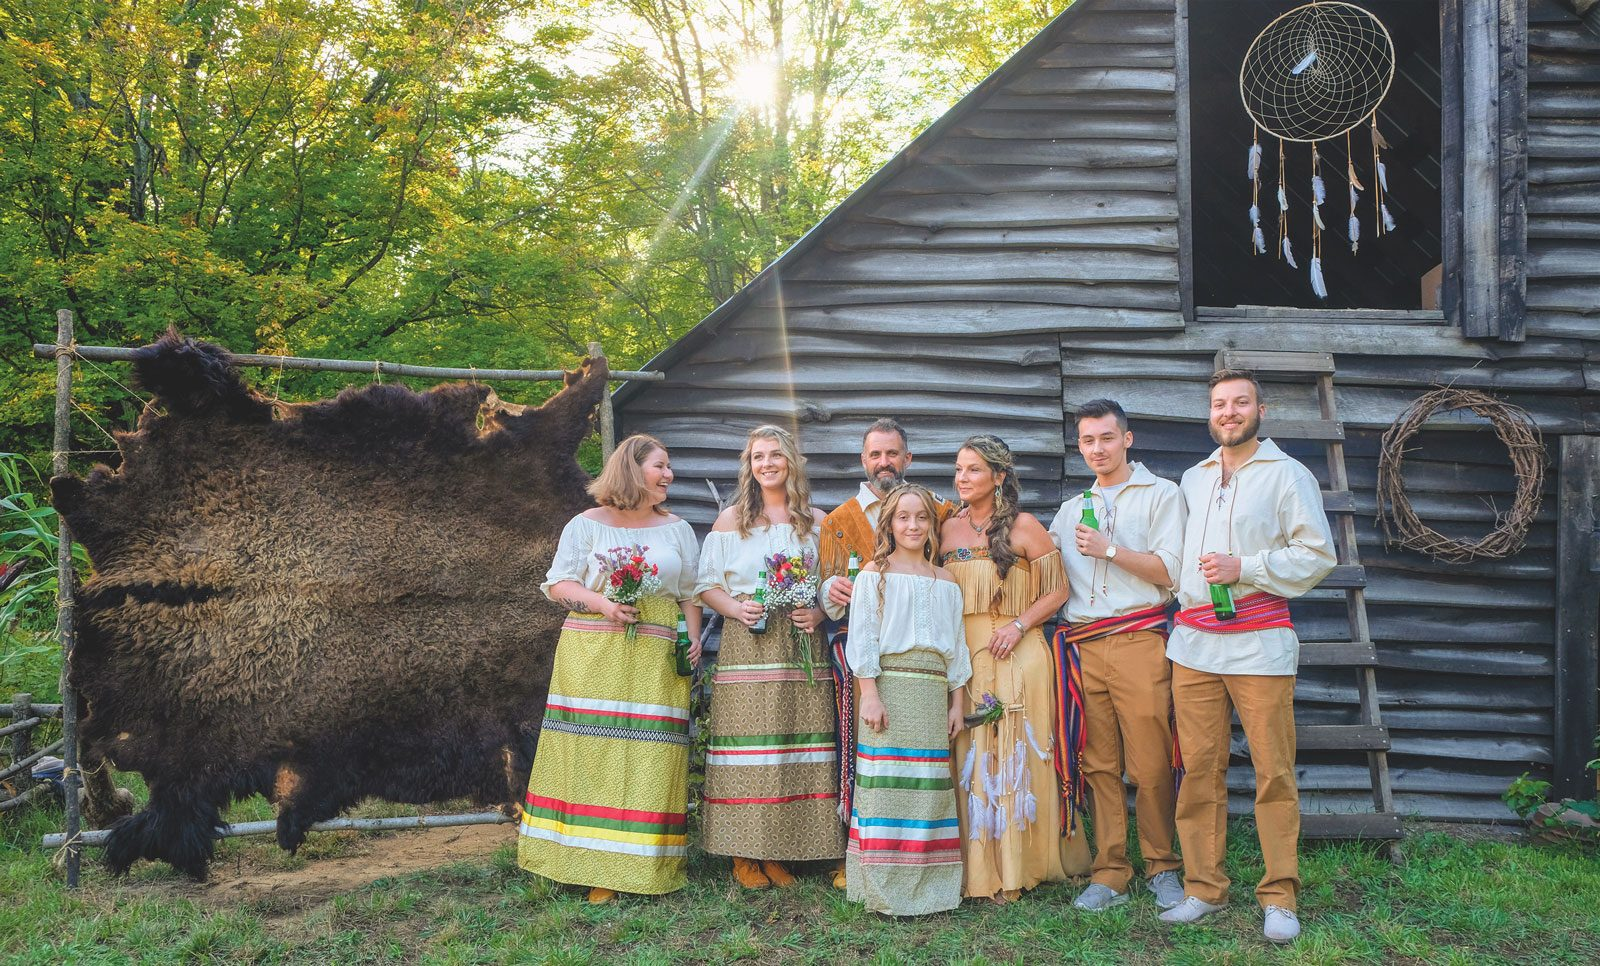 The happy family decked out in traditional Métis clothing, most of which Lisa created